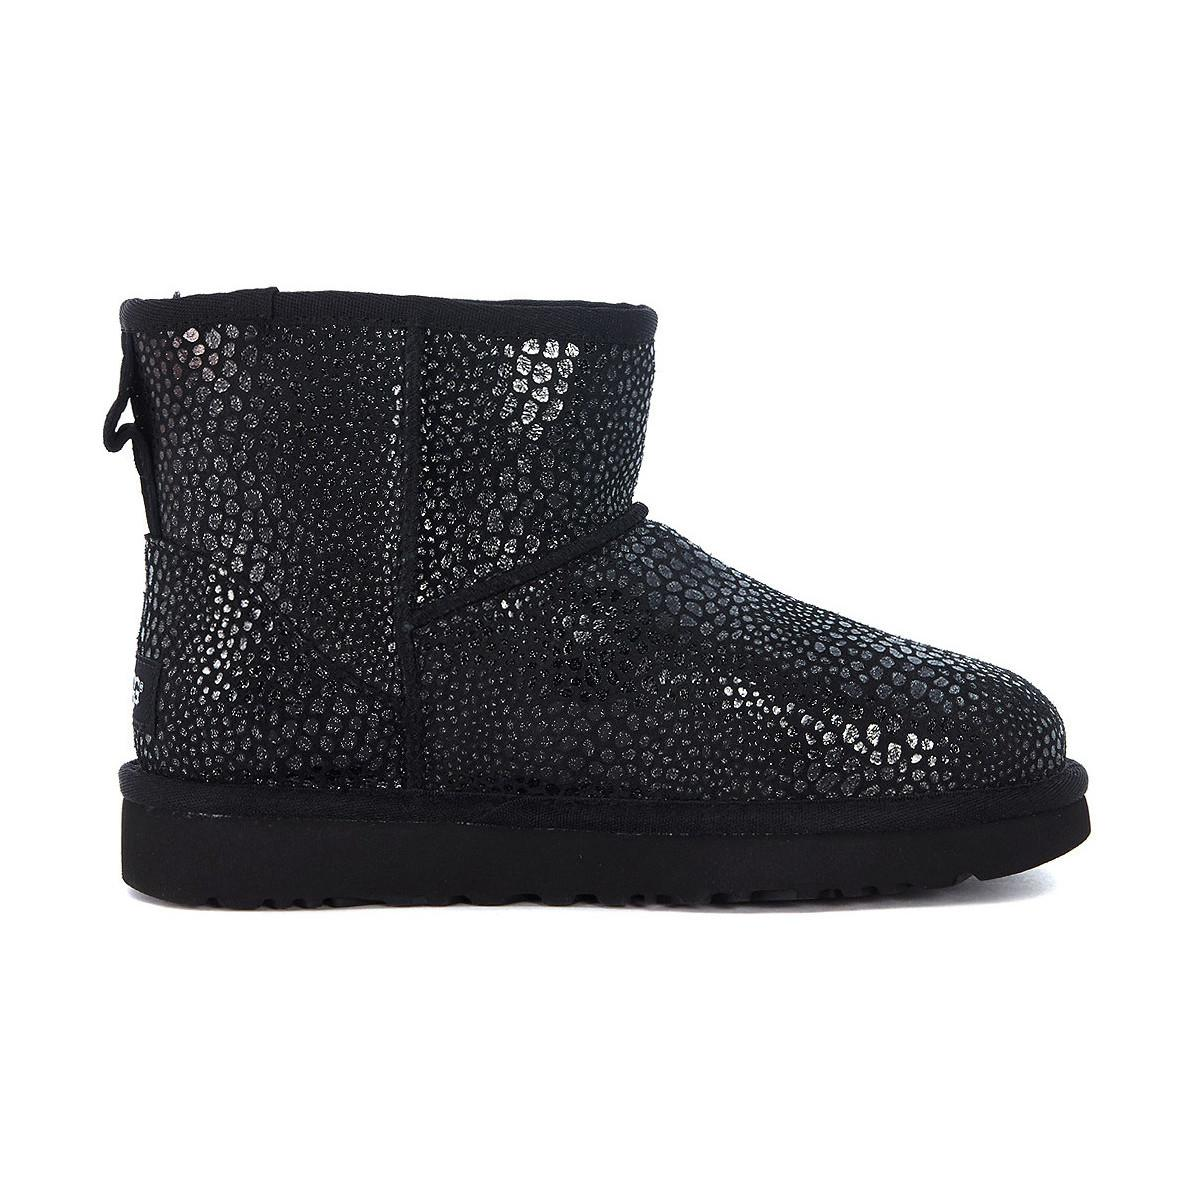 UGG Classic Mini Glitzy Ankle Boots In Reptile Effect Suede Leather Sale Fashion Style Outlet Perfect Discount 2018 Newest Amazon n1mmImNG